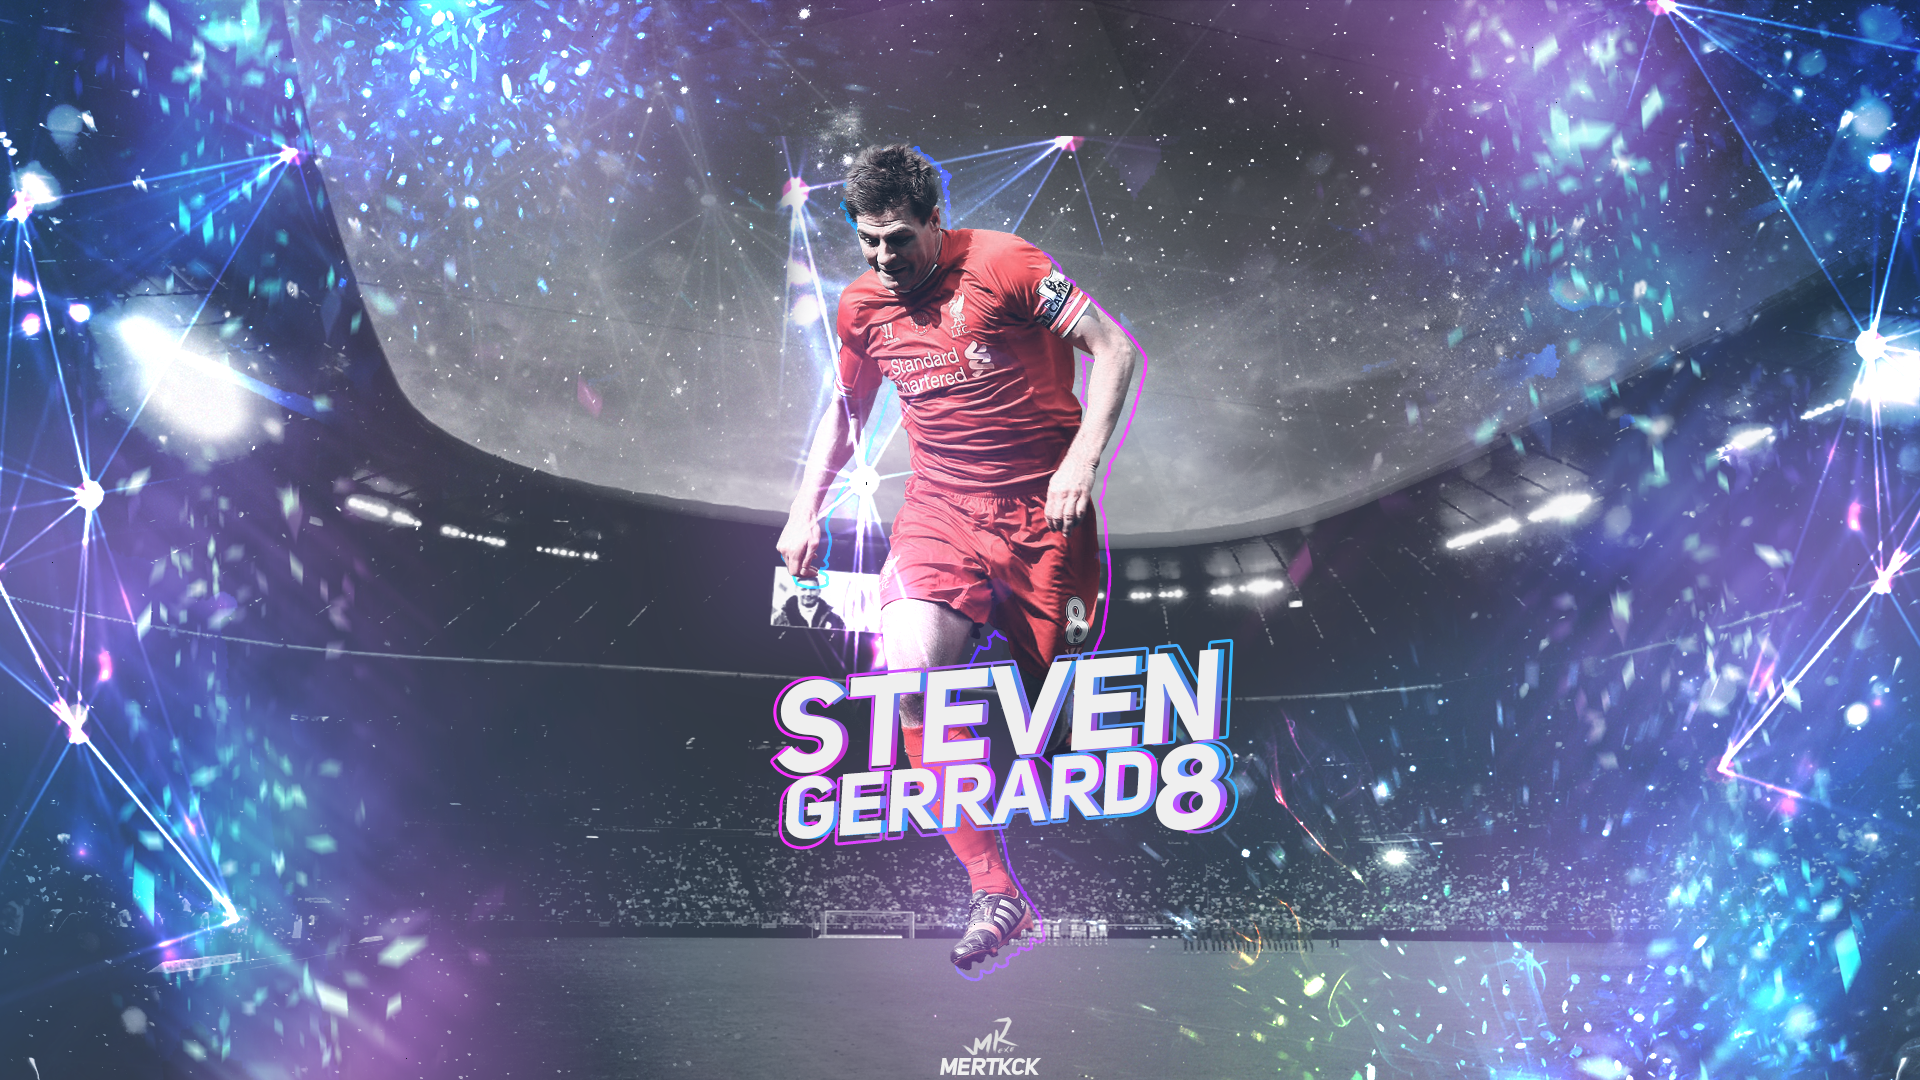 General 1920x1080 Steven Gerrard Liverpool FC Liverpool British Football Player